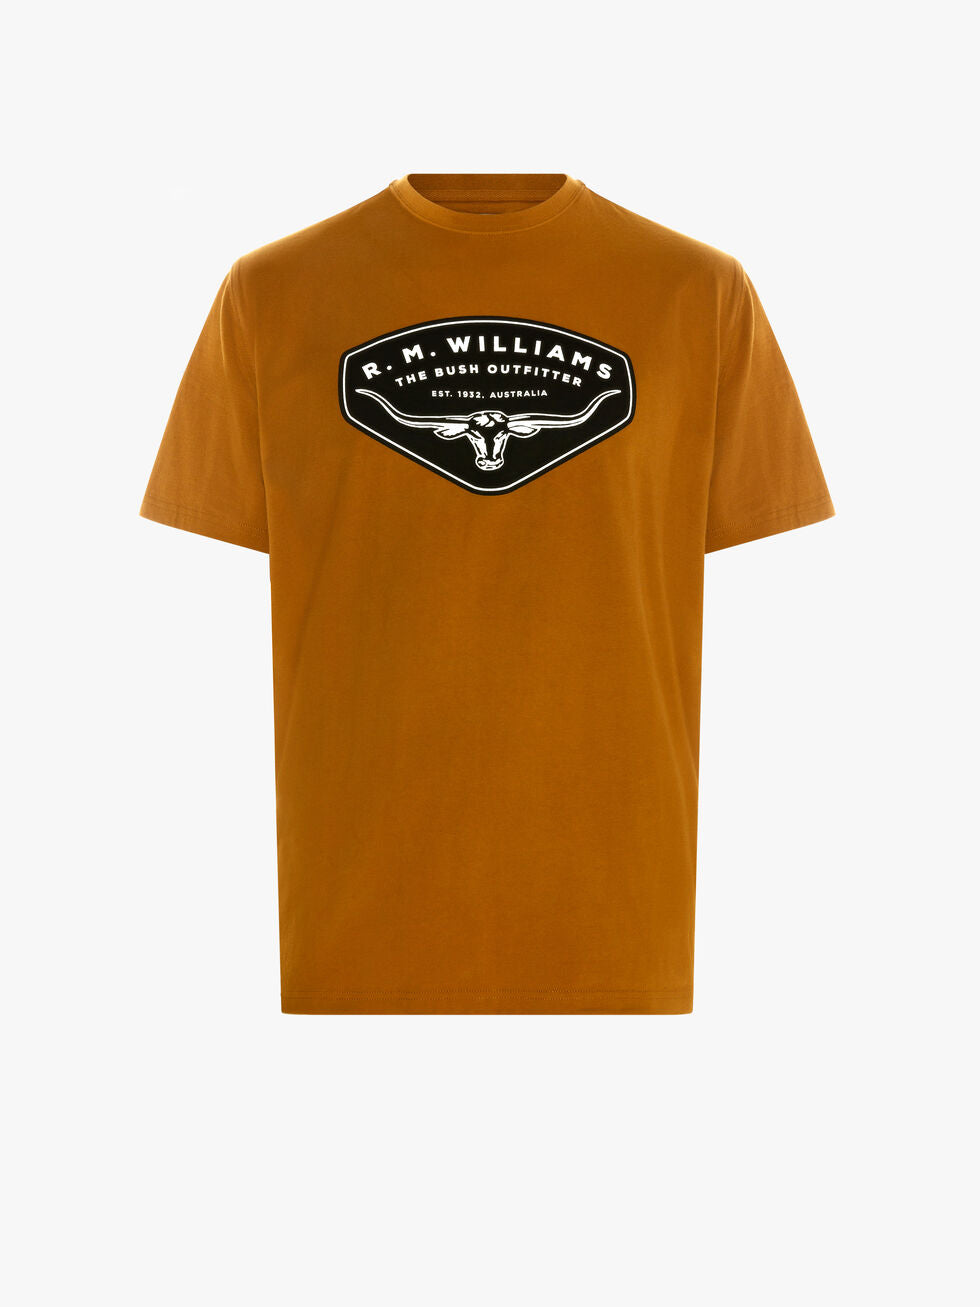 R.M. Williams Shield T-Shirt - Bronze